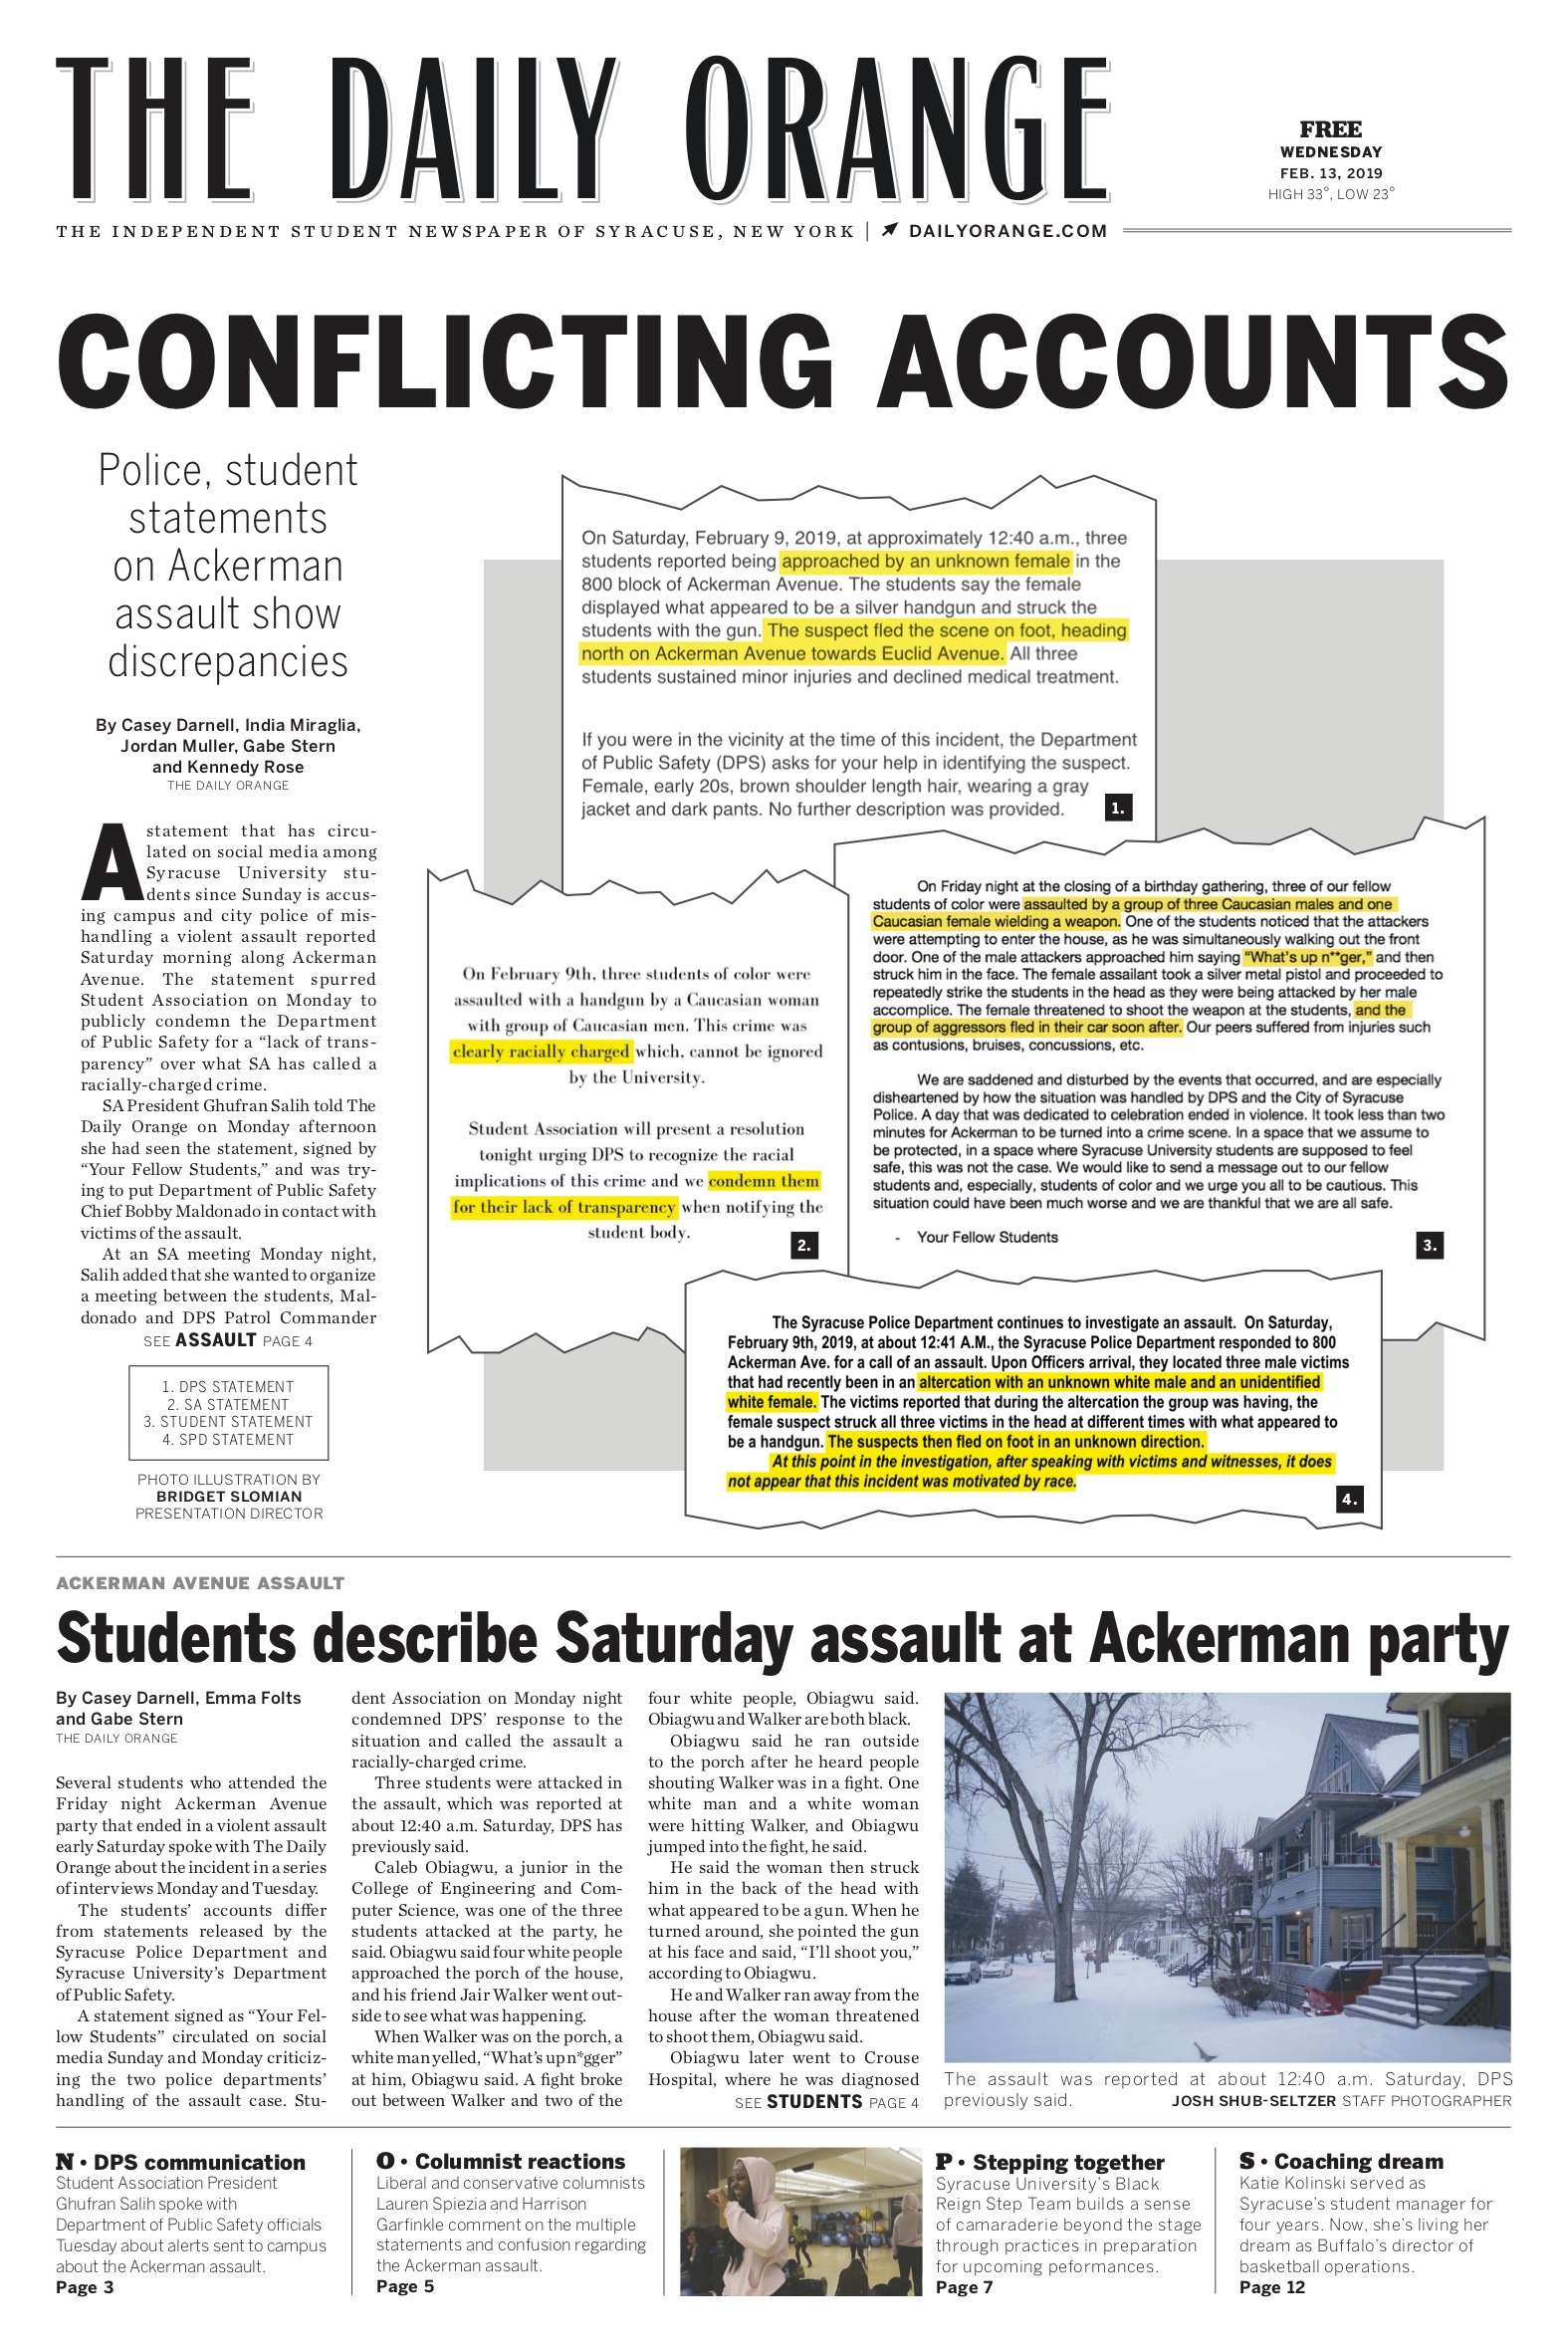 On February 9, 2019, several Syracuse University students were assaulted at their apartment. Their statements differed from those given by the university's Department of Public Safety, Syracuse City Police and the Student Association. This photo illustration was created in collaboration with the Editor-in-Chief and News Editor to highlight these discrepancies as the student body waited for the administration's response.   Role : Page design, photo illustration